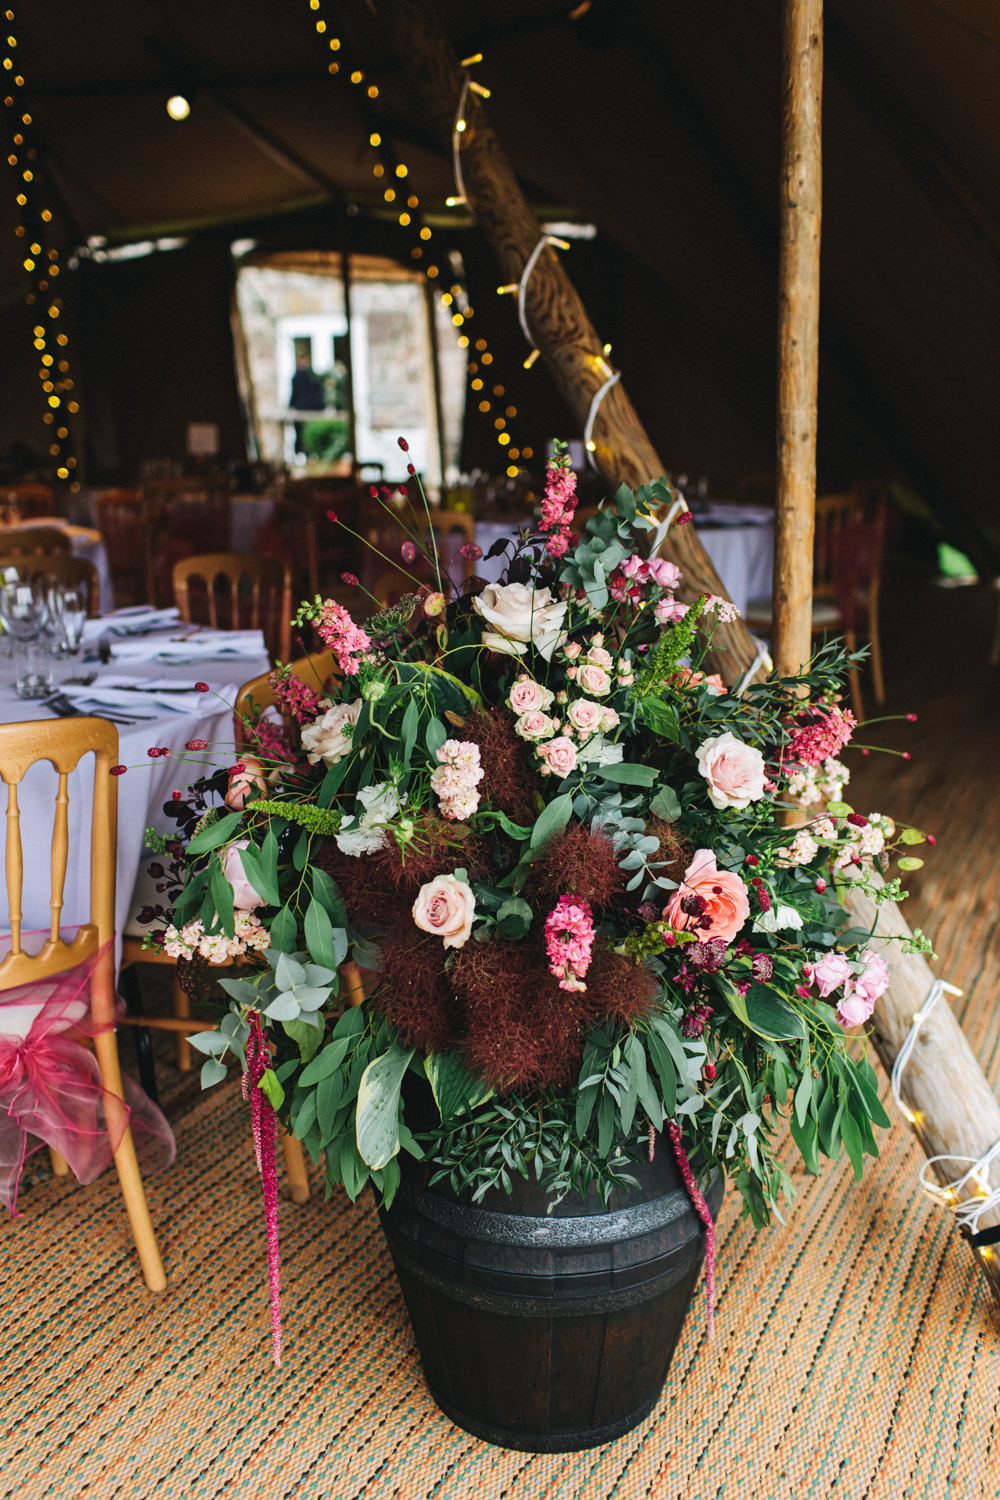 Flower Arrangement Barrel Pink Red Greenery Foliage Outbuildings Wedding Jessica O'Shaughnessy Photography